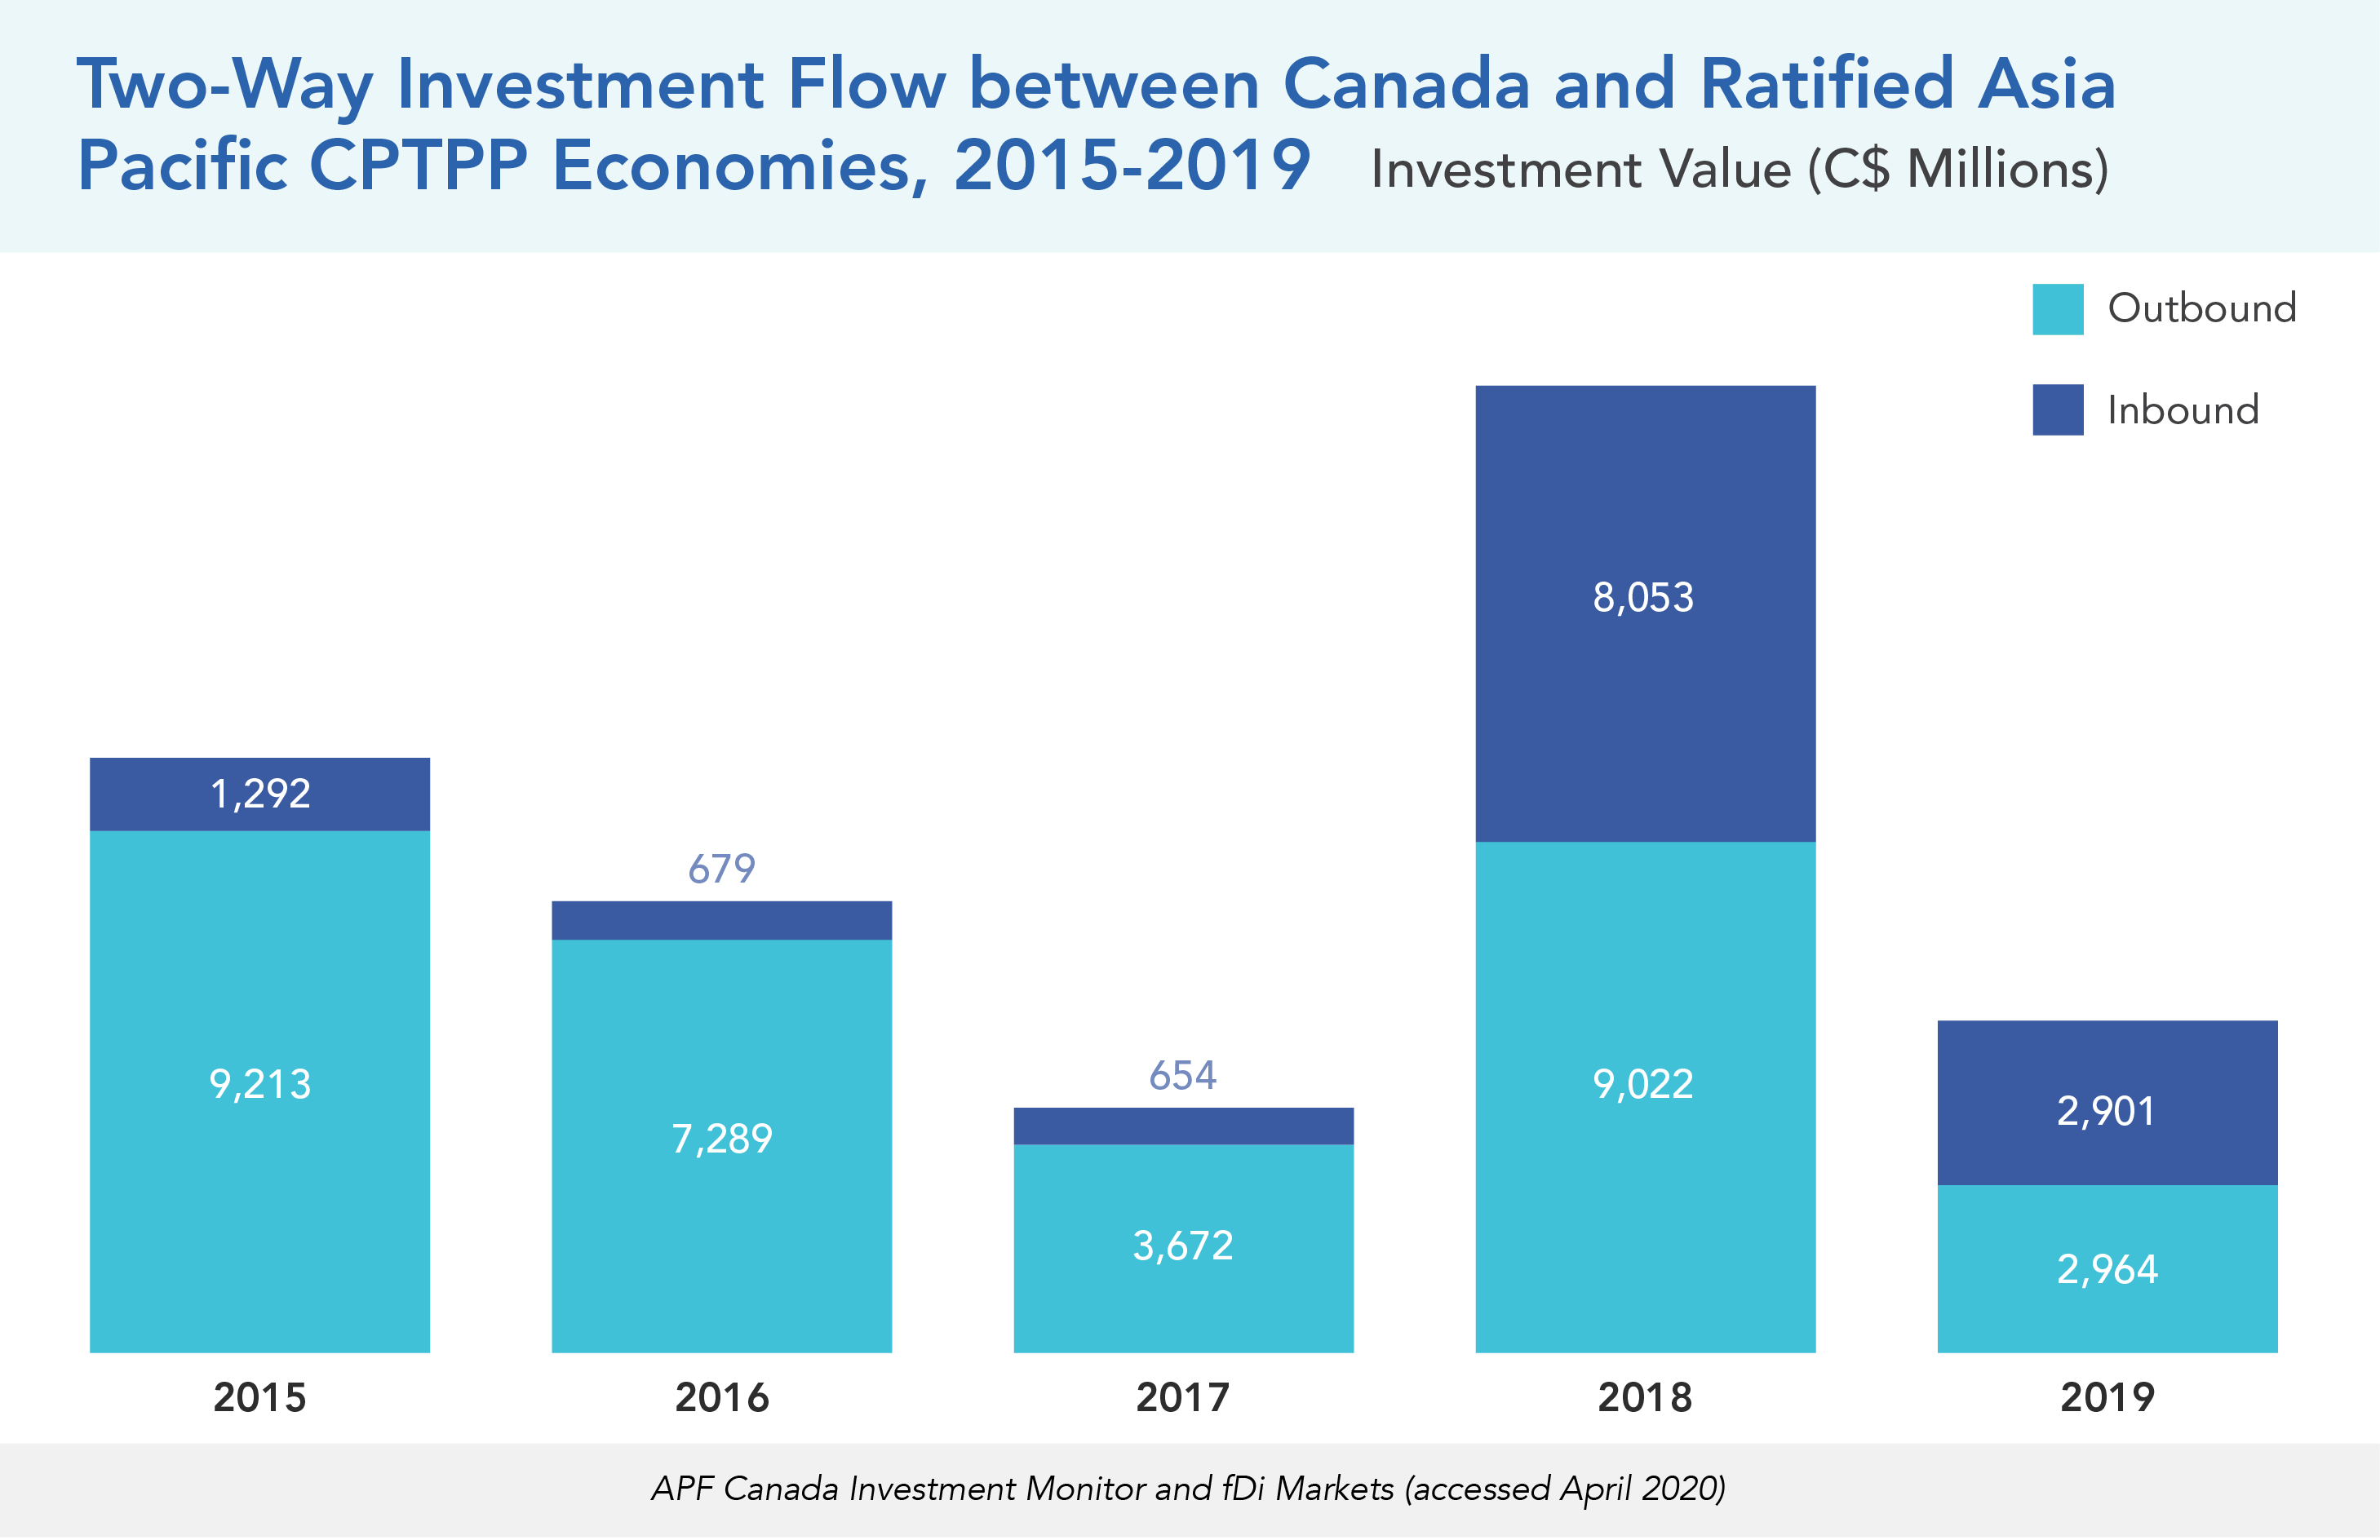 Two-Way Investment Flow between Canada and Ratified Asia Pacific CPTPP Economies, 2015-2019